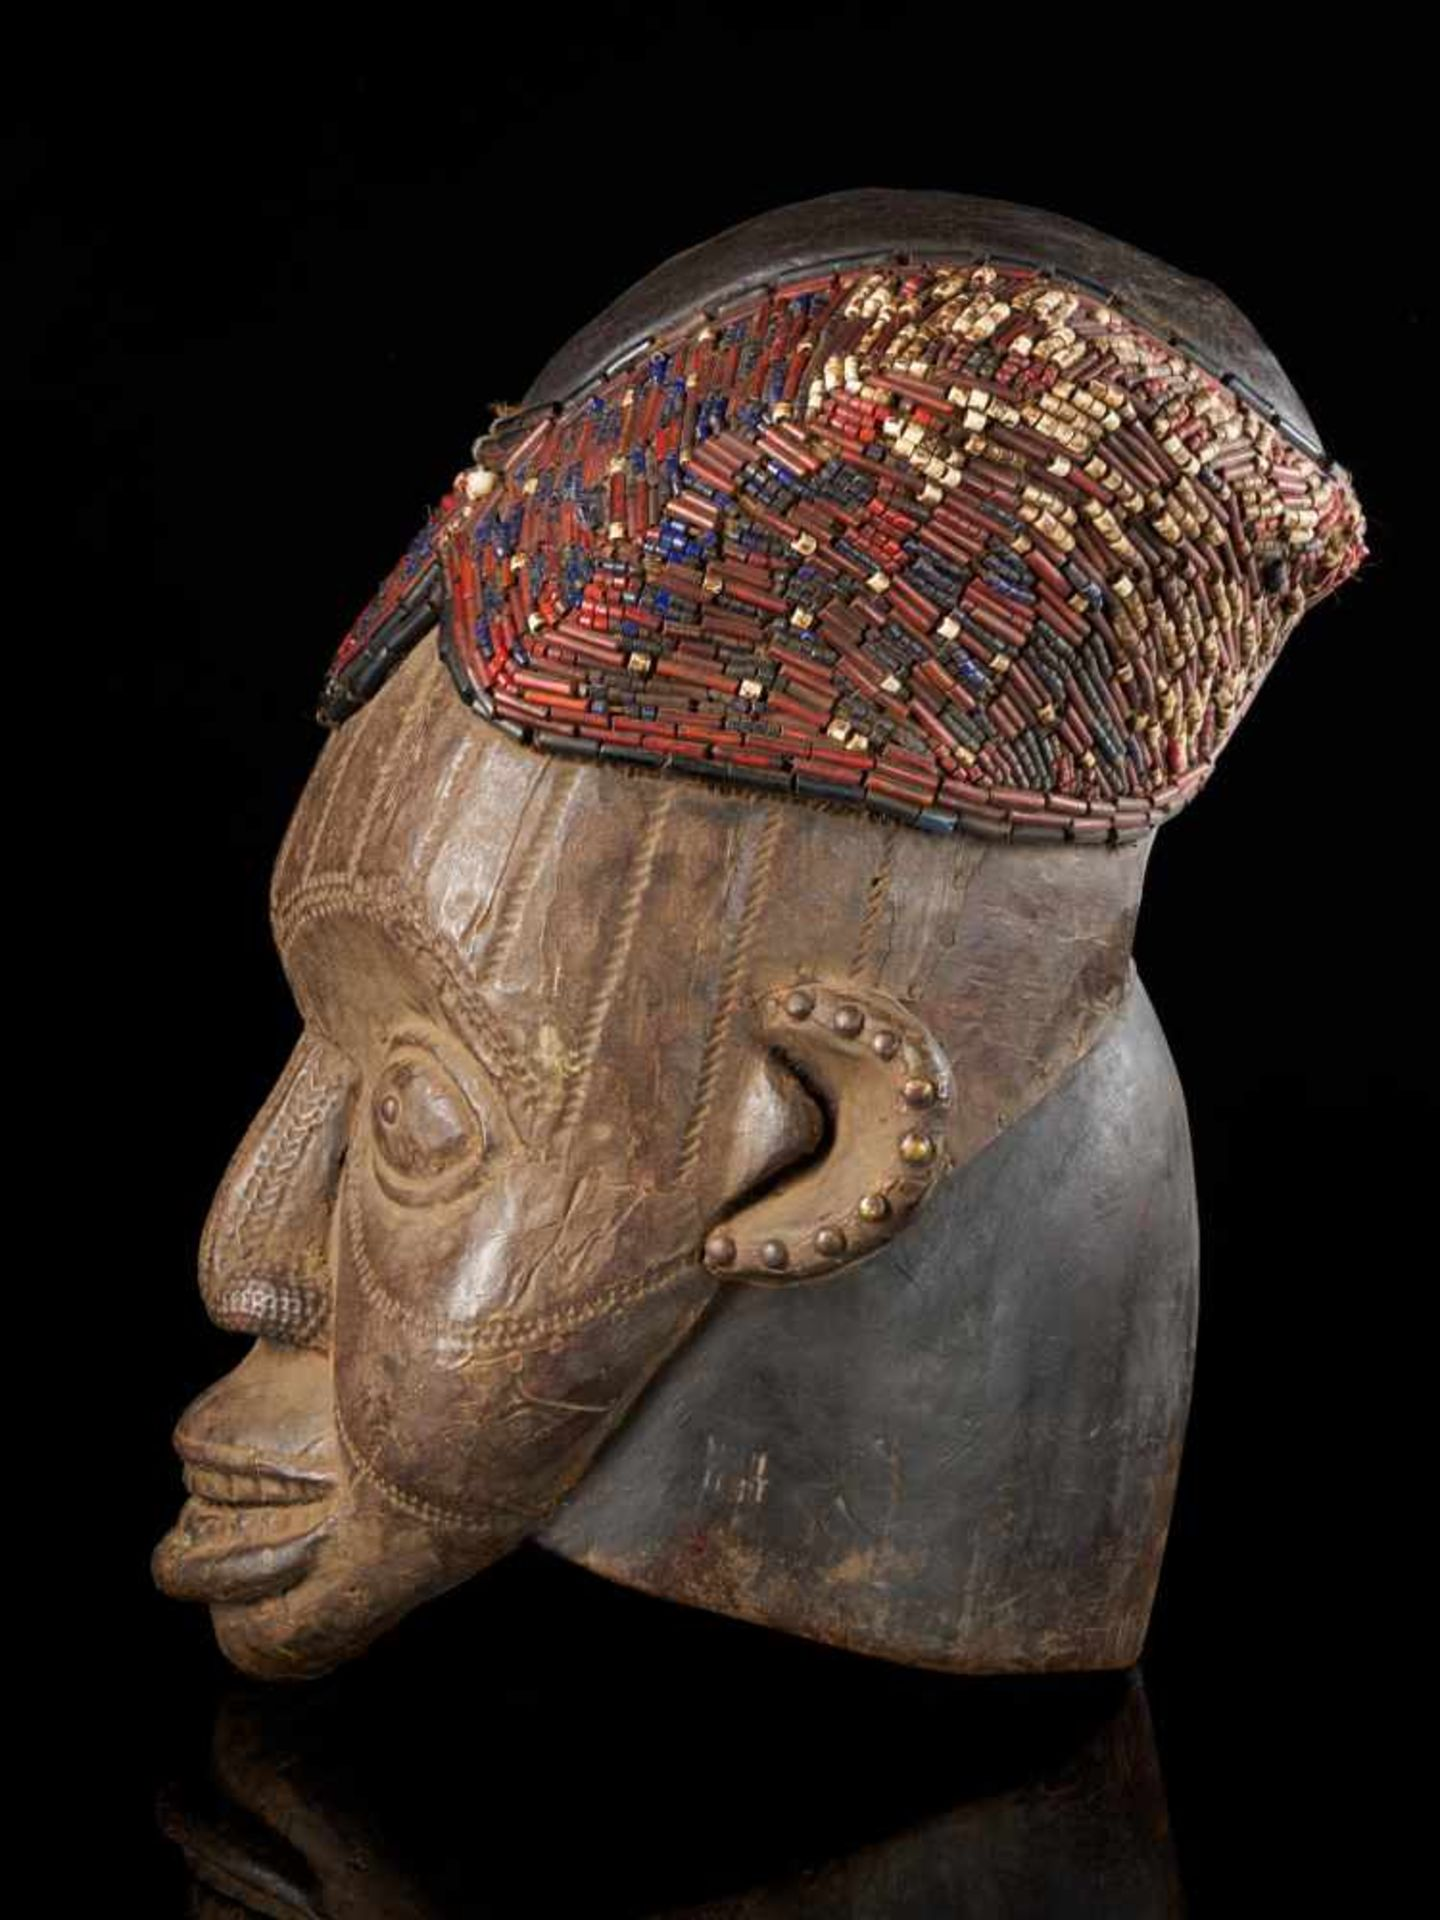 Beaded Helmet Mask - Copper Covered Face - Tribal ArtThis gorgeous wooden mask is detailed with a - Bild 2 aus 5